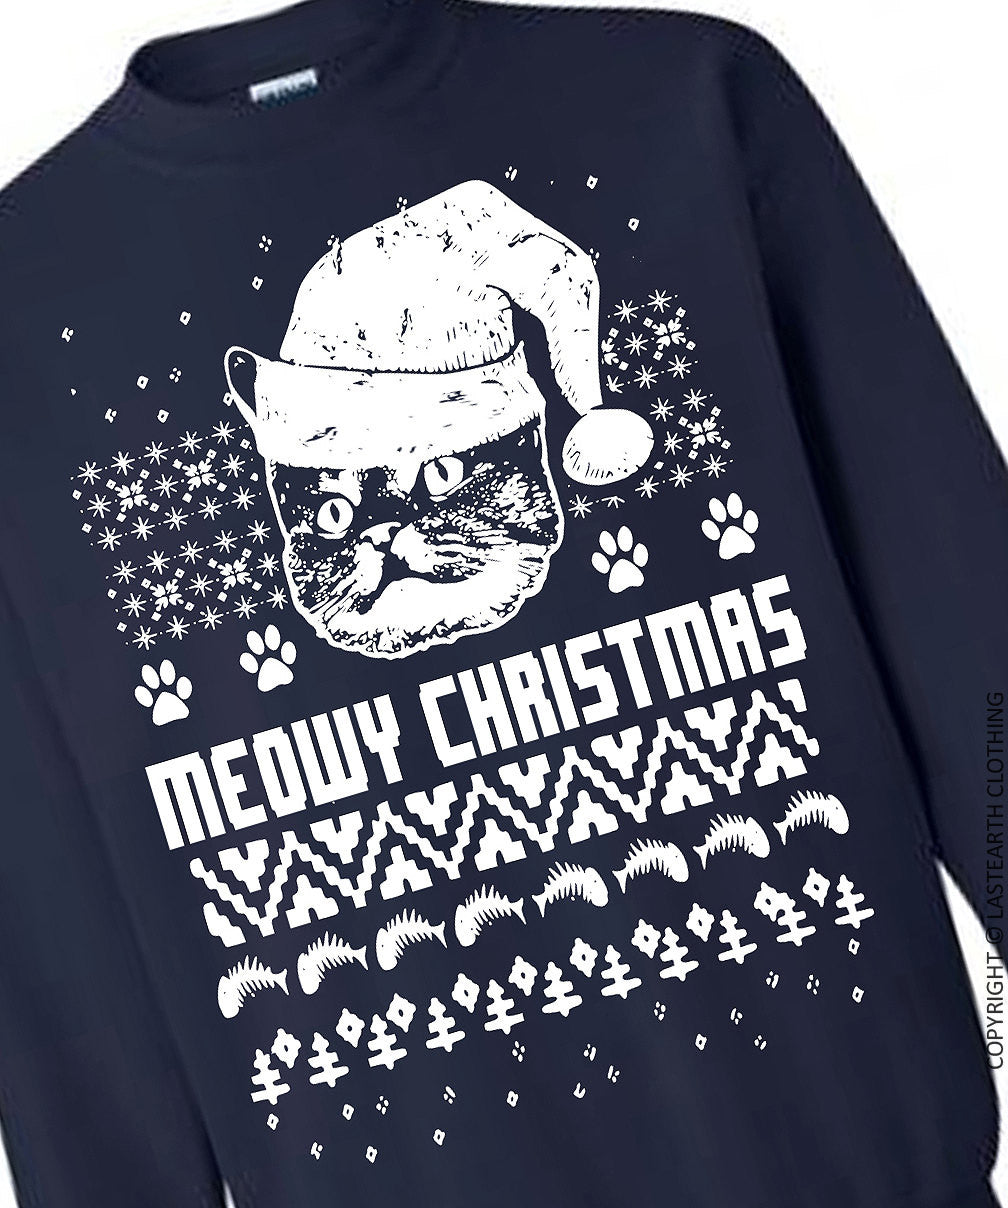 Ugly Christmas Sweater Cat.Cat Christmas Sweater Cats Ugly Christmas Sweater Fleece Pullover Sweatshirt S M L Xl 2x